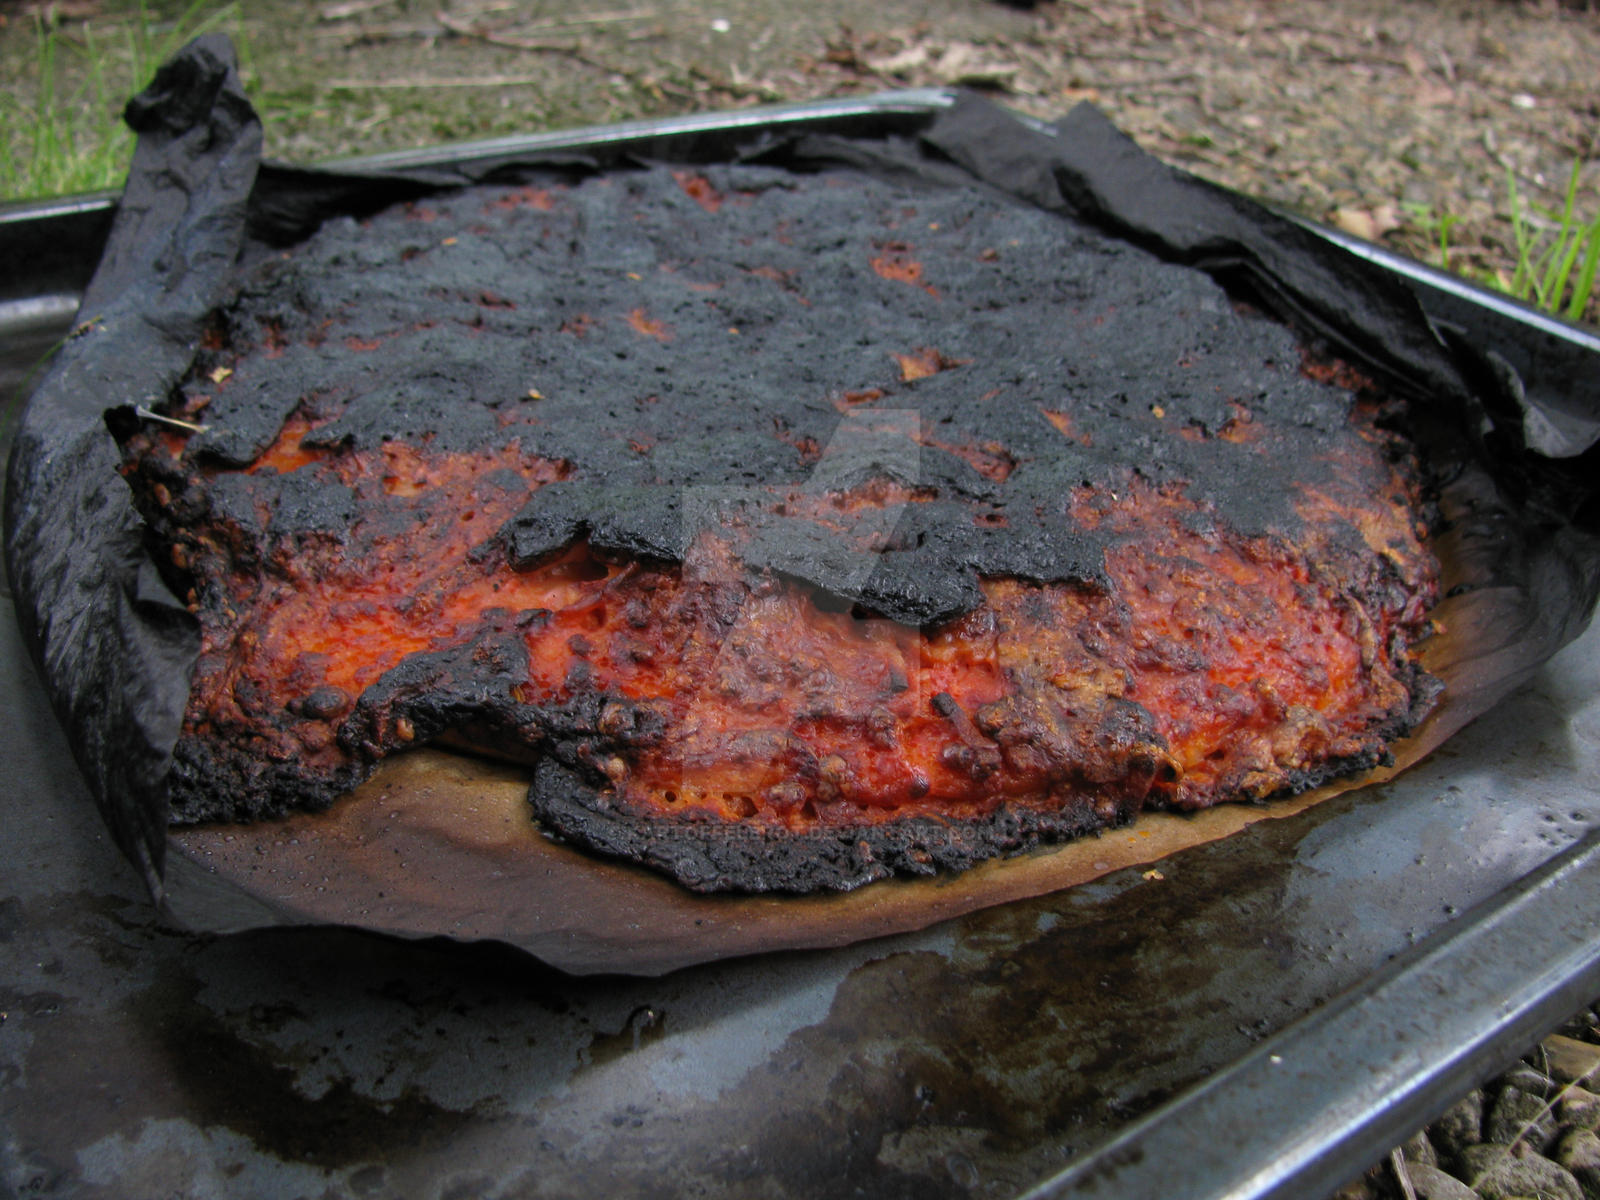 Burned out of pizza?